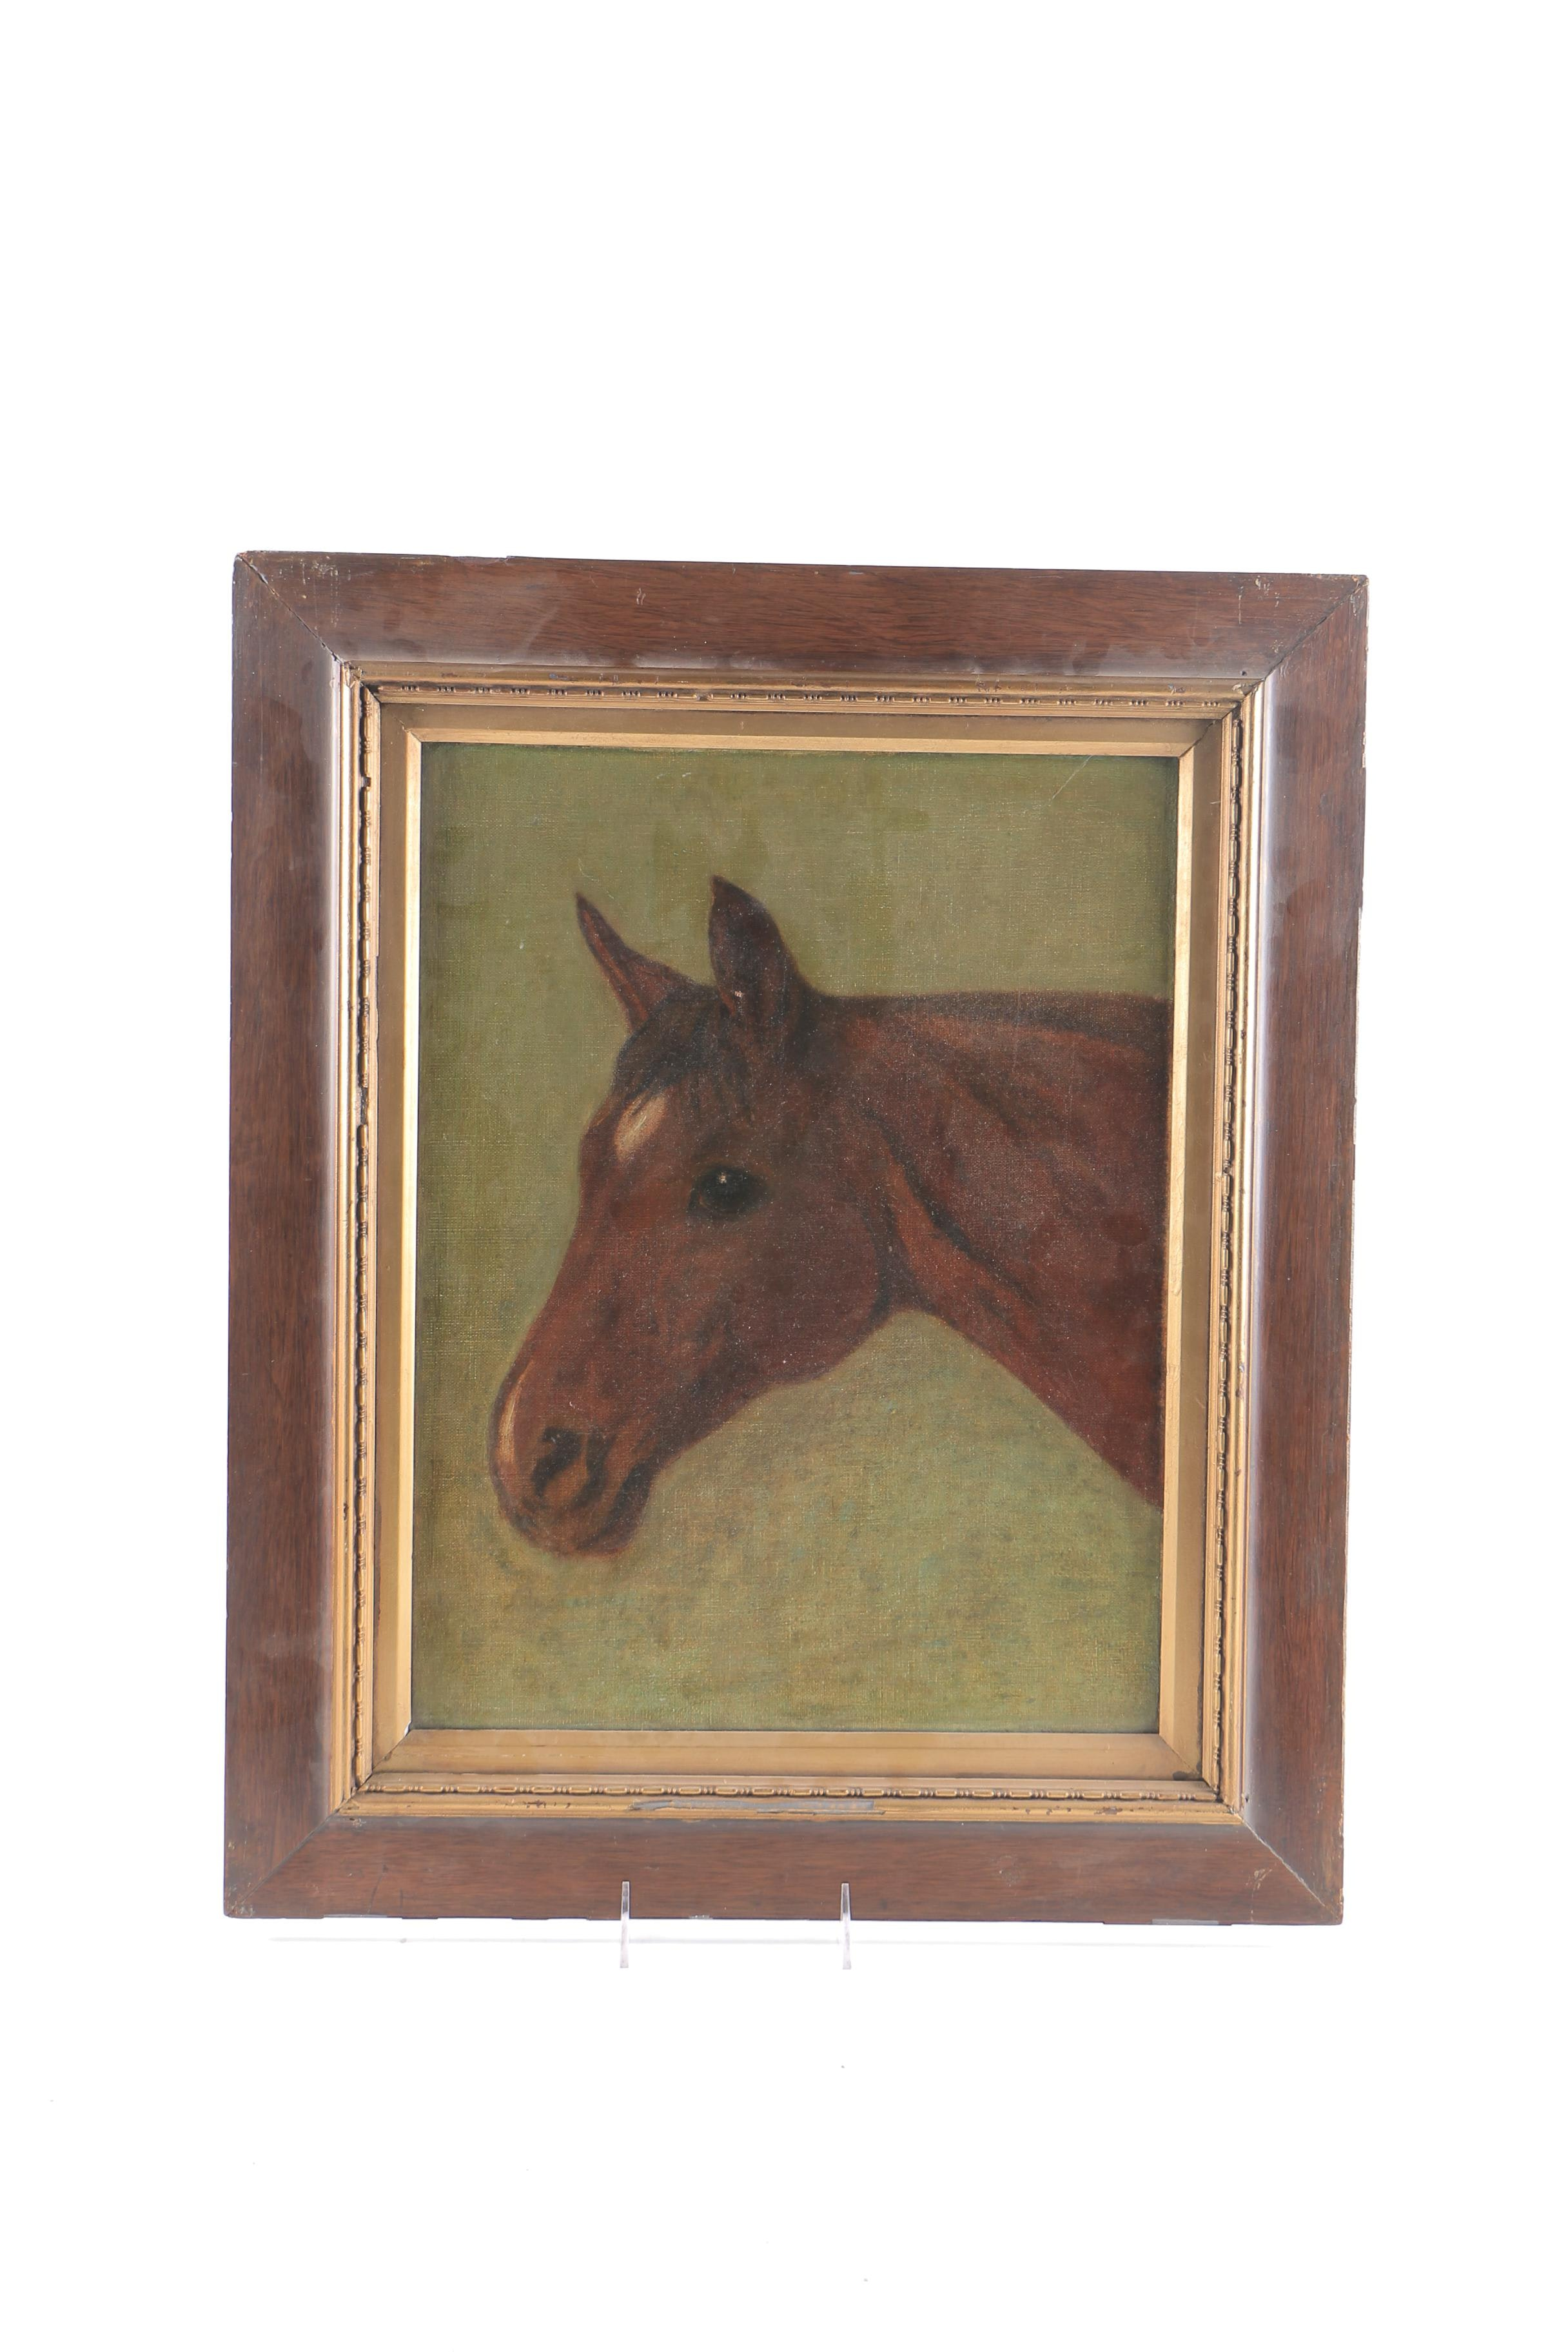 """Attributed to G.B Rosher Oil Painting on Canvas """"Horse"""""""